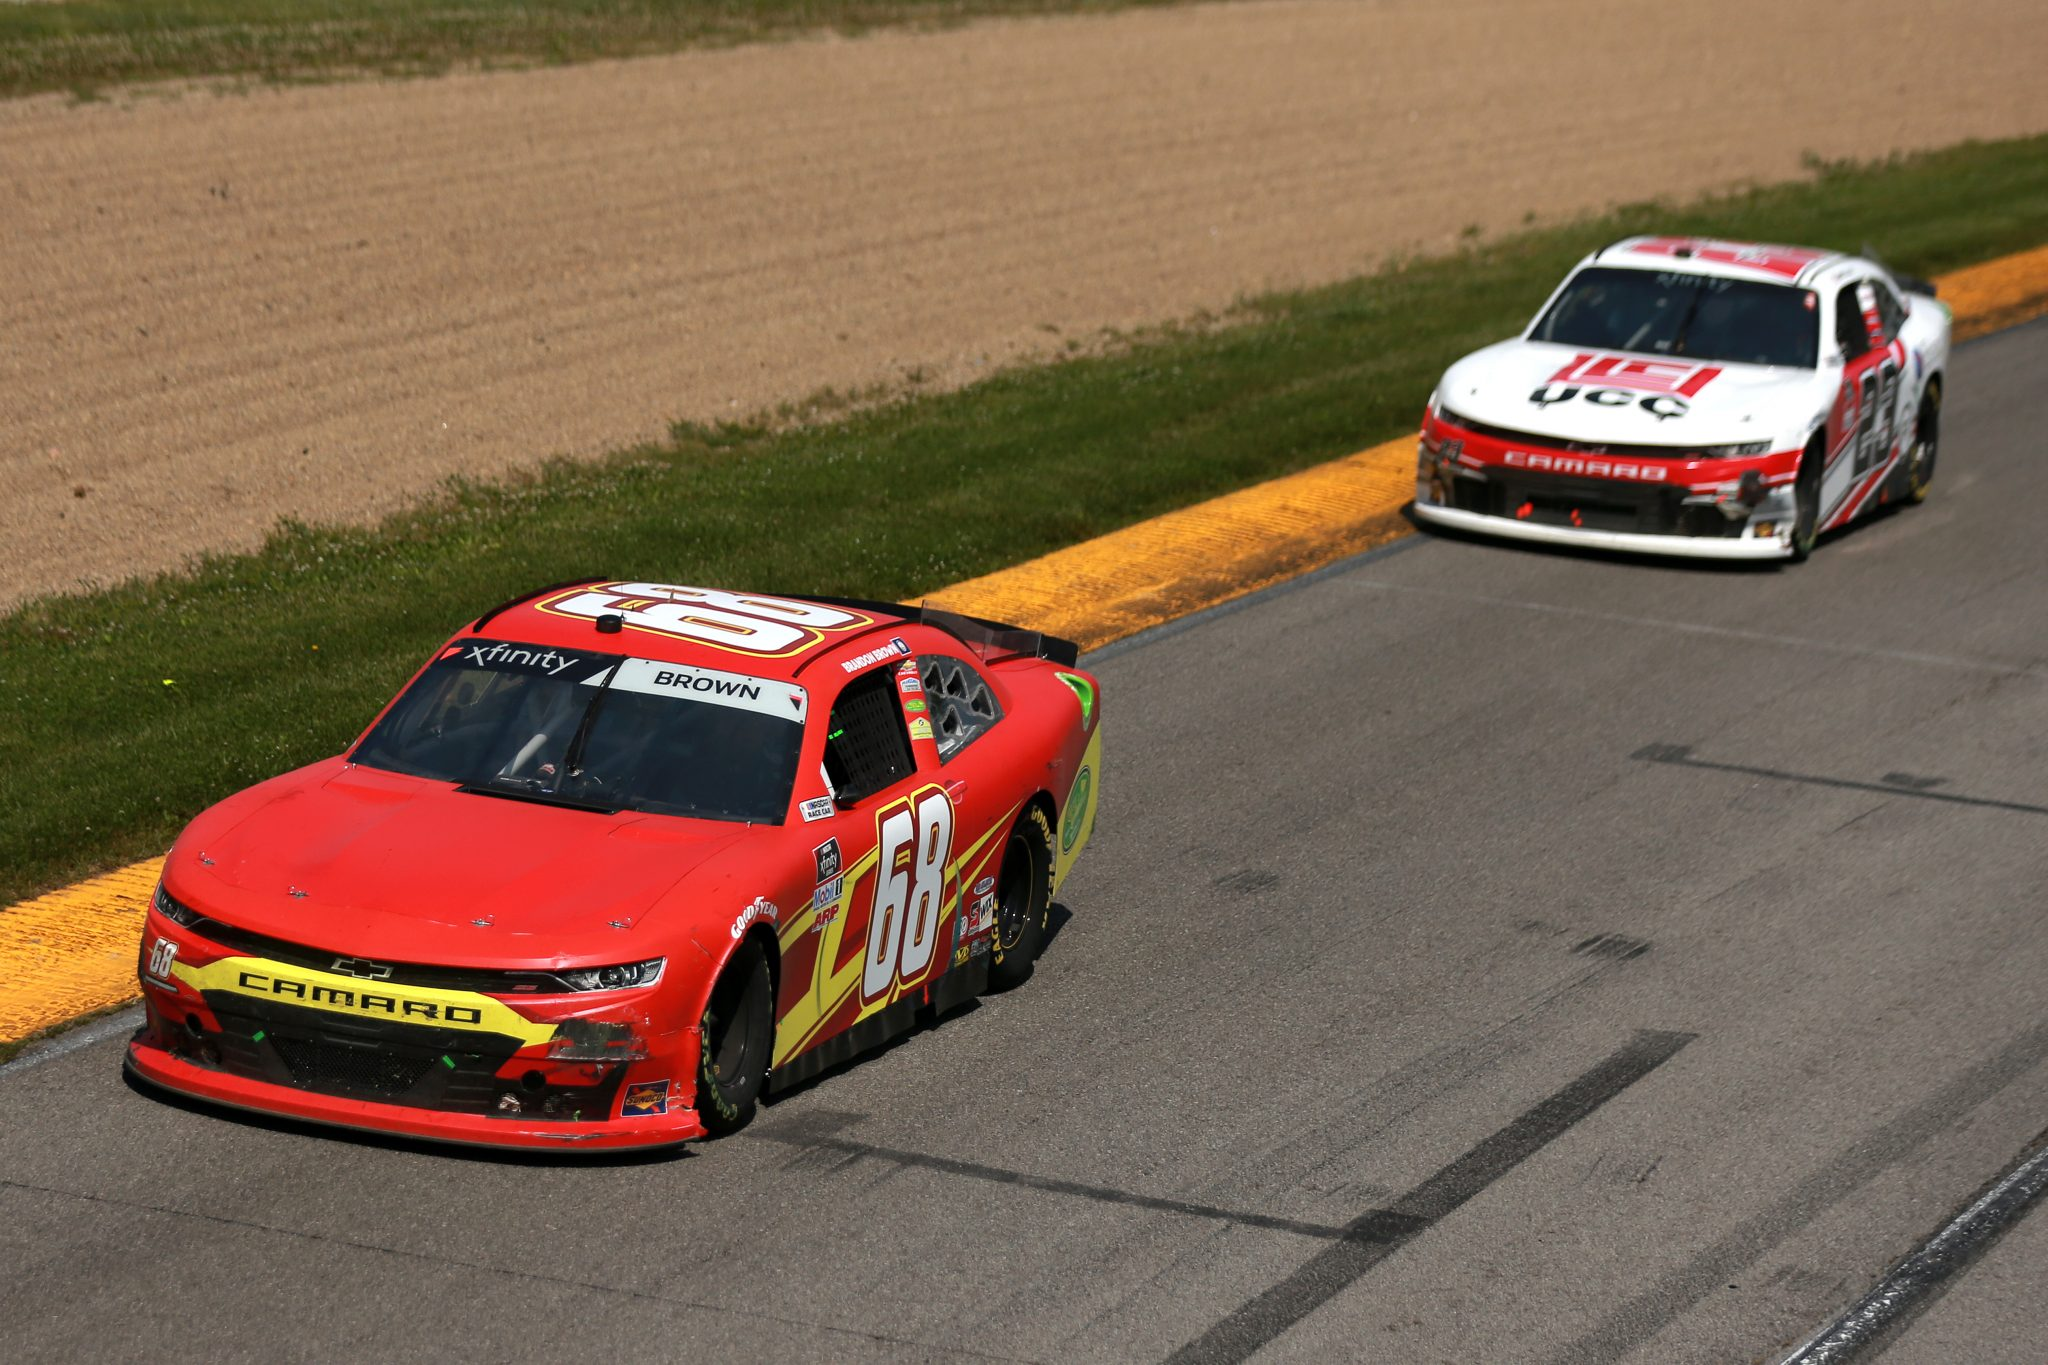 LEXINGTON, OHIO - JUNE 05: Brandon Brown, driver of the #68 Orig. Larry's Hard Lemonade Brewing Co Chevrolet, and Andy Lally, driver of the #23 UCC/Energy Air Inc Chevrolet, race during the NASCAR Xfinity Series B&L Transport 170 at Mid-Ohio Sports Car Course on June 05, 2021 in Lexington, Ohio. (Photo by Sean Gardner/Getty Images) | Getty Images